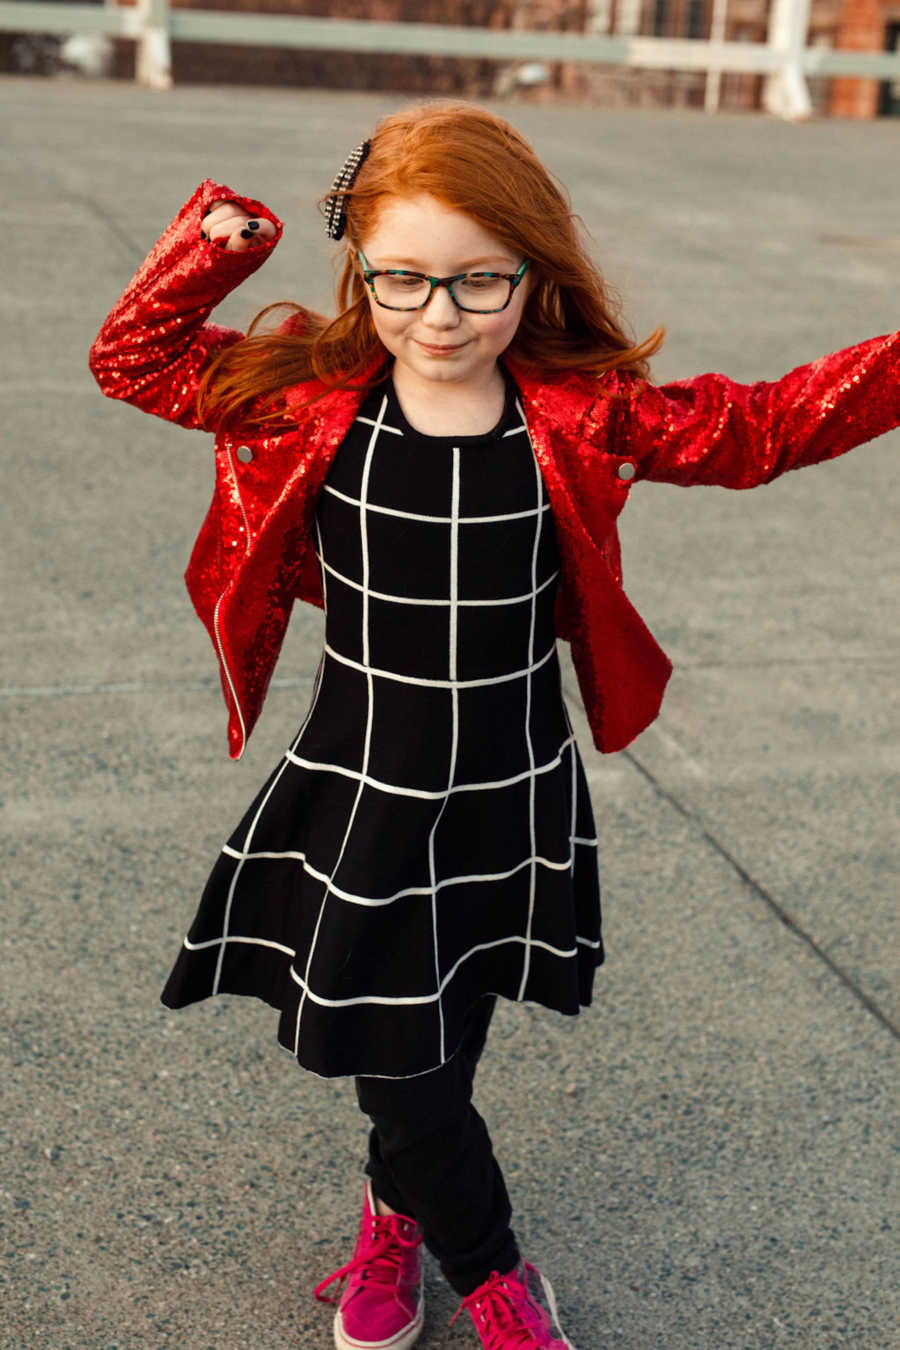 Young redhead girl wearing black grid dress and sparkly red jacket twirling outside